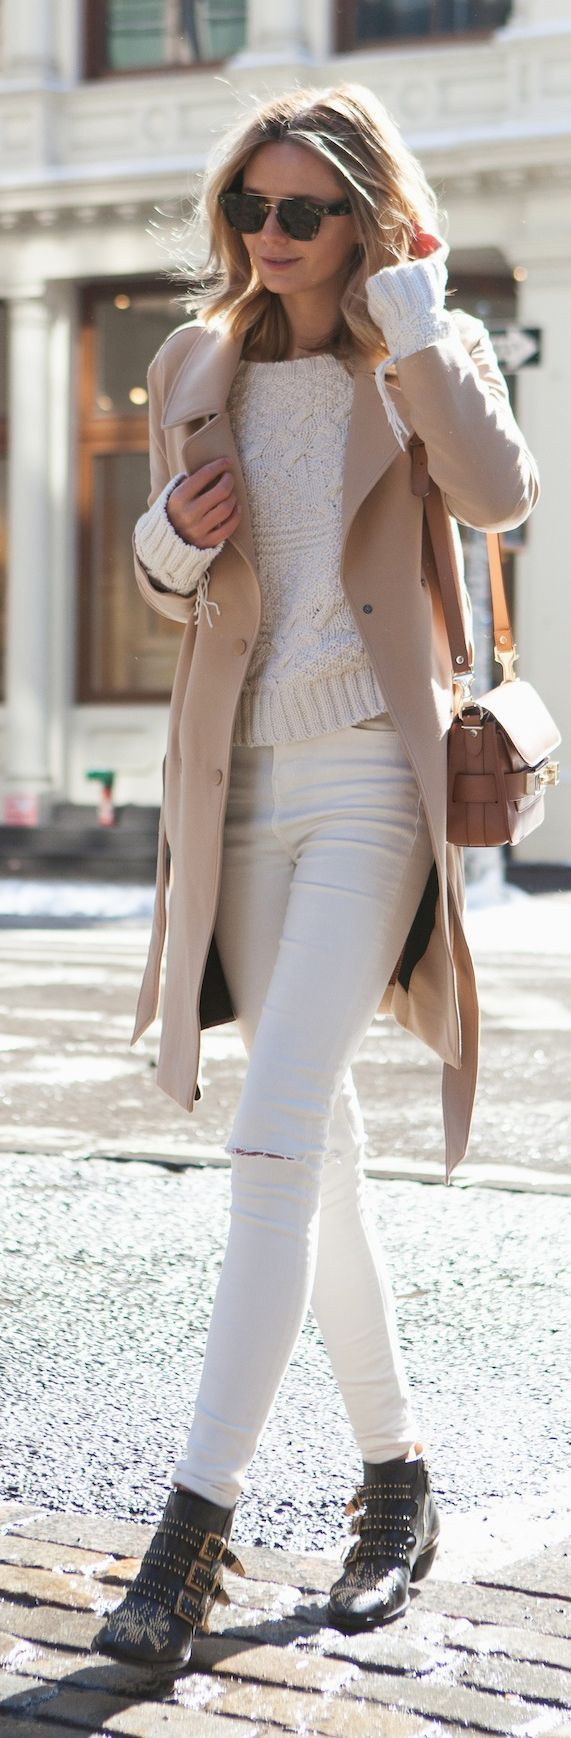 ❄ Fresh, frosty, winter white will always be classic. See my #fashionfiend board for style ideas! ❄ | ✨ Jane Spring